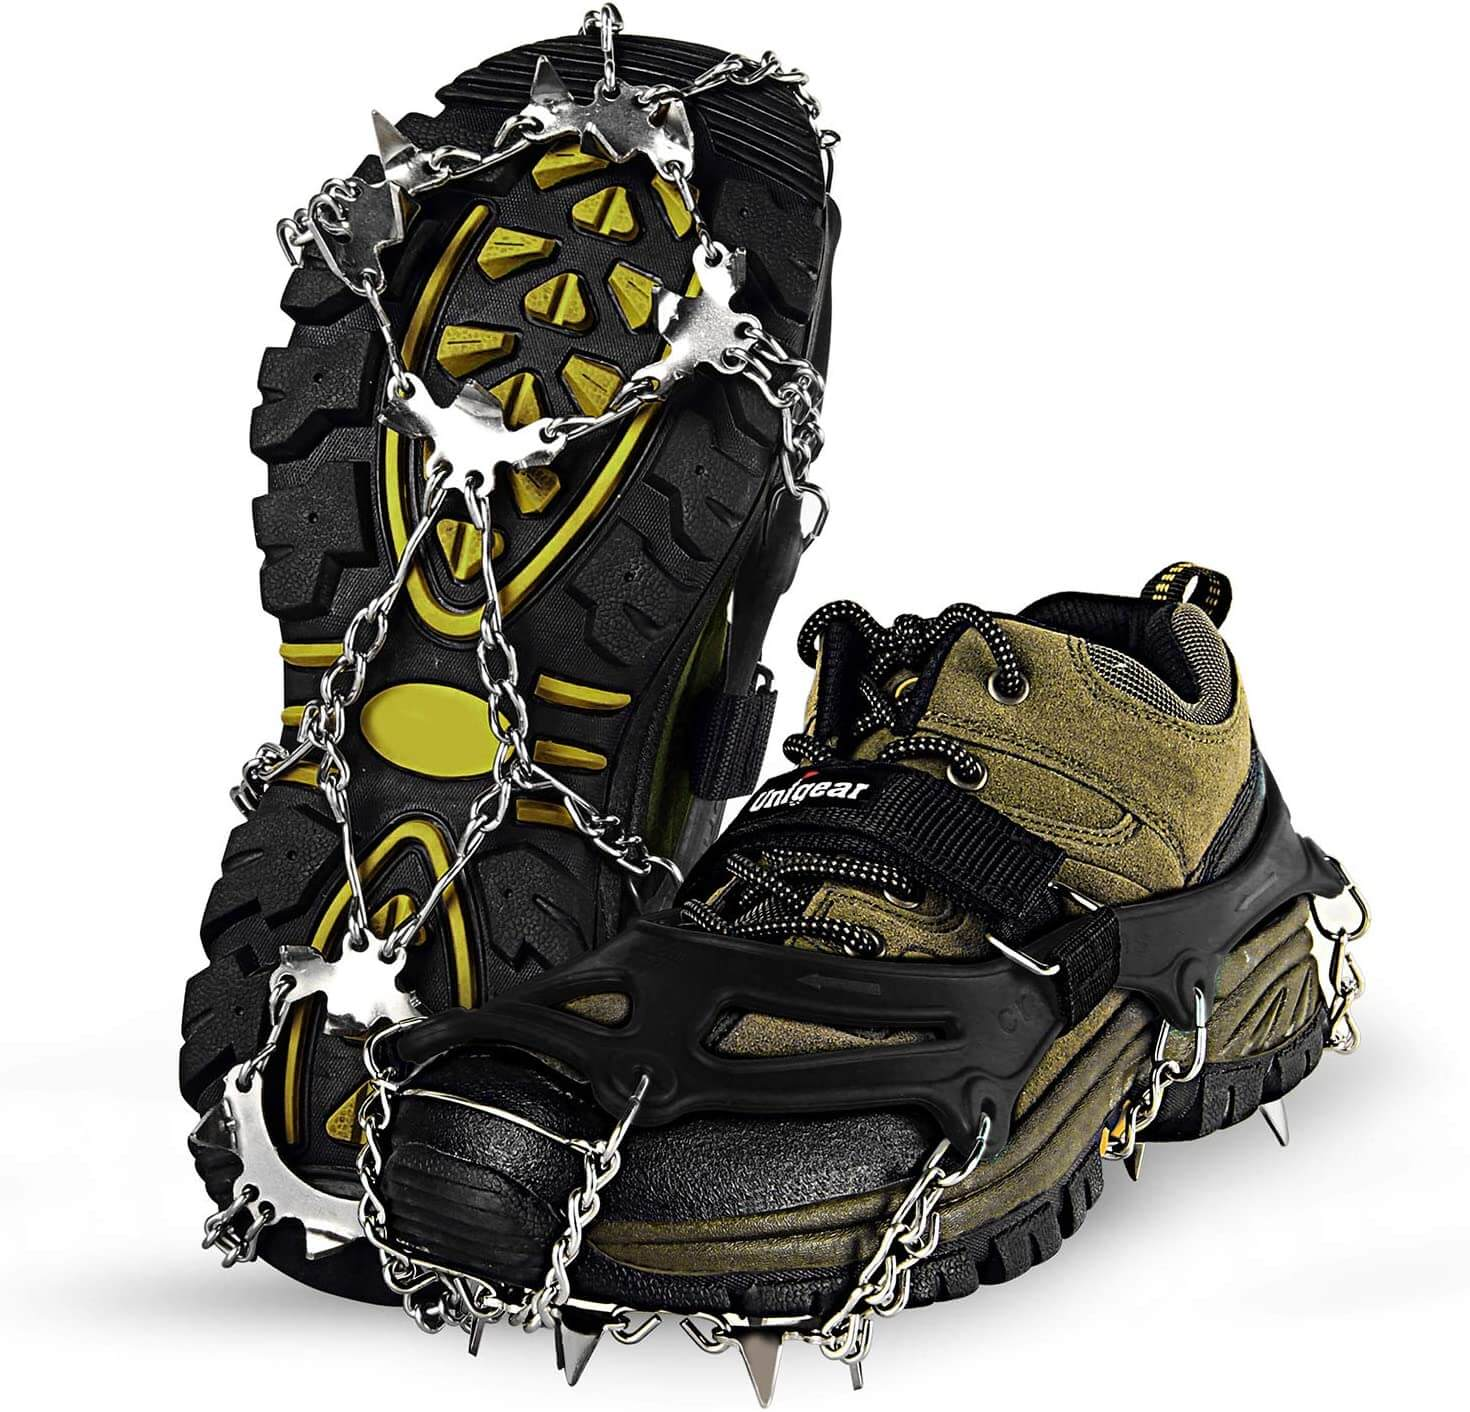 Traction Cleats Ice Snow Cleats With 19 Spikes